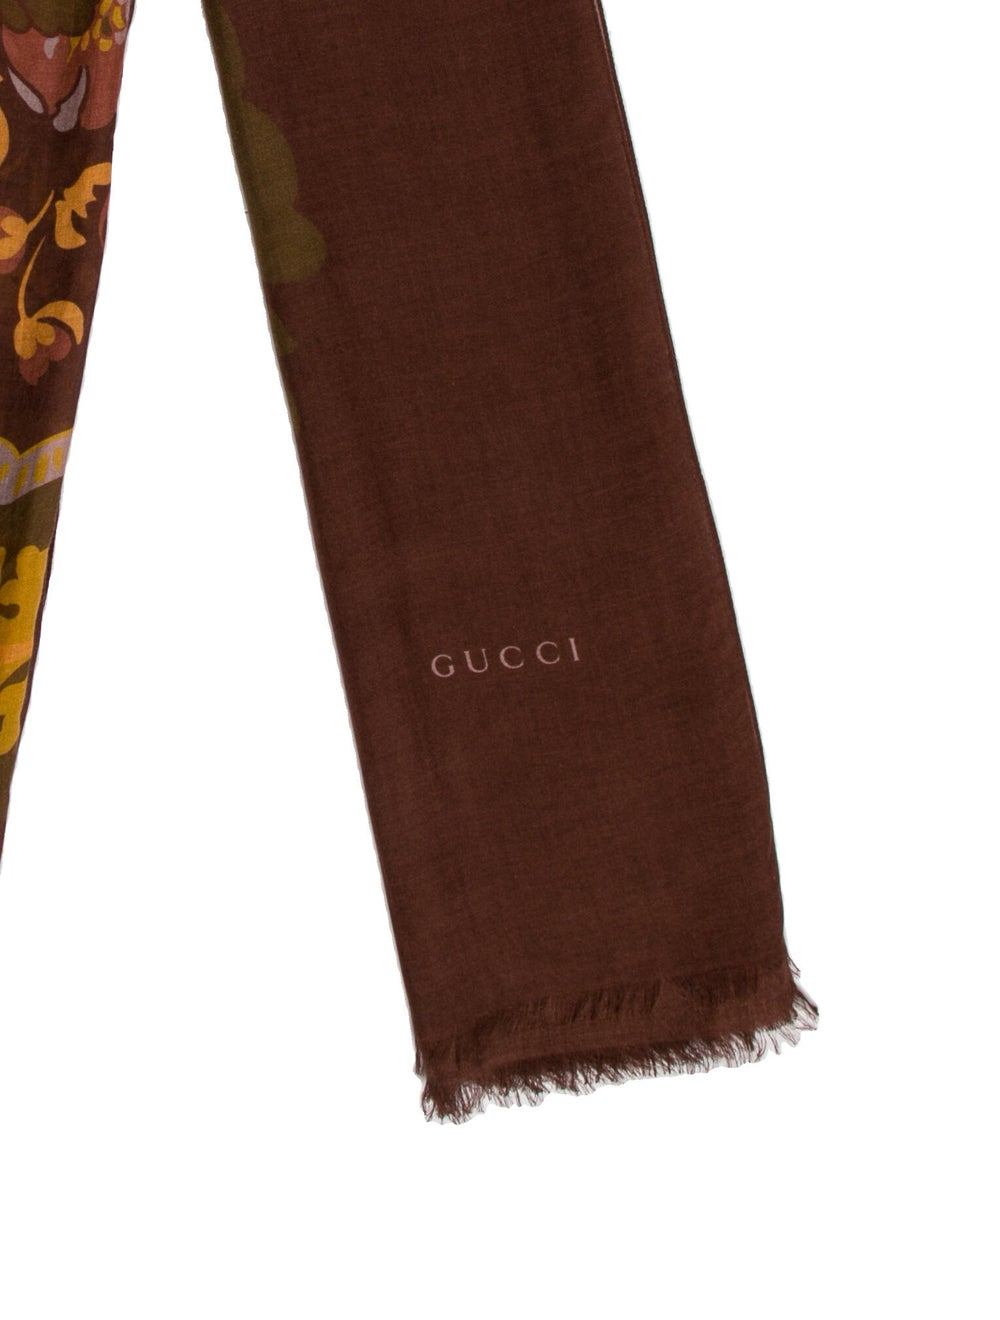 Gucci Livia Floral Print Scarf w/ Tags Brown - image 2